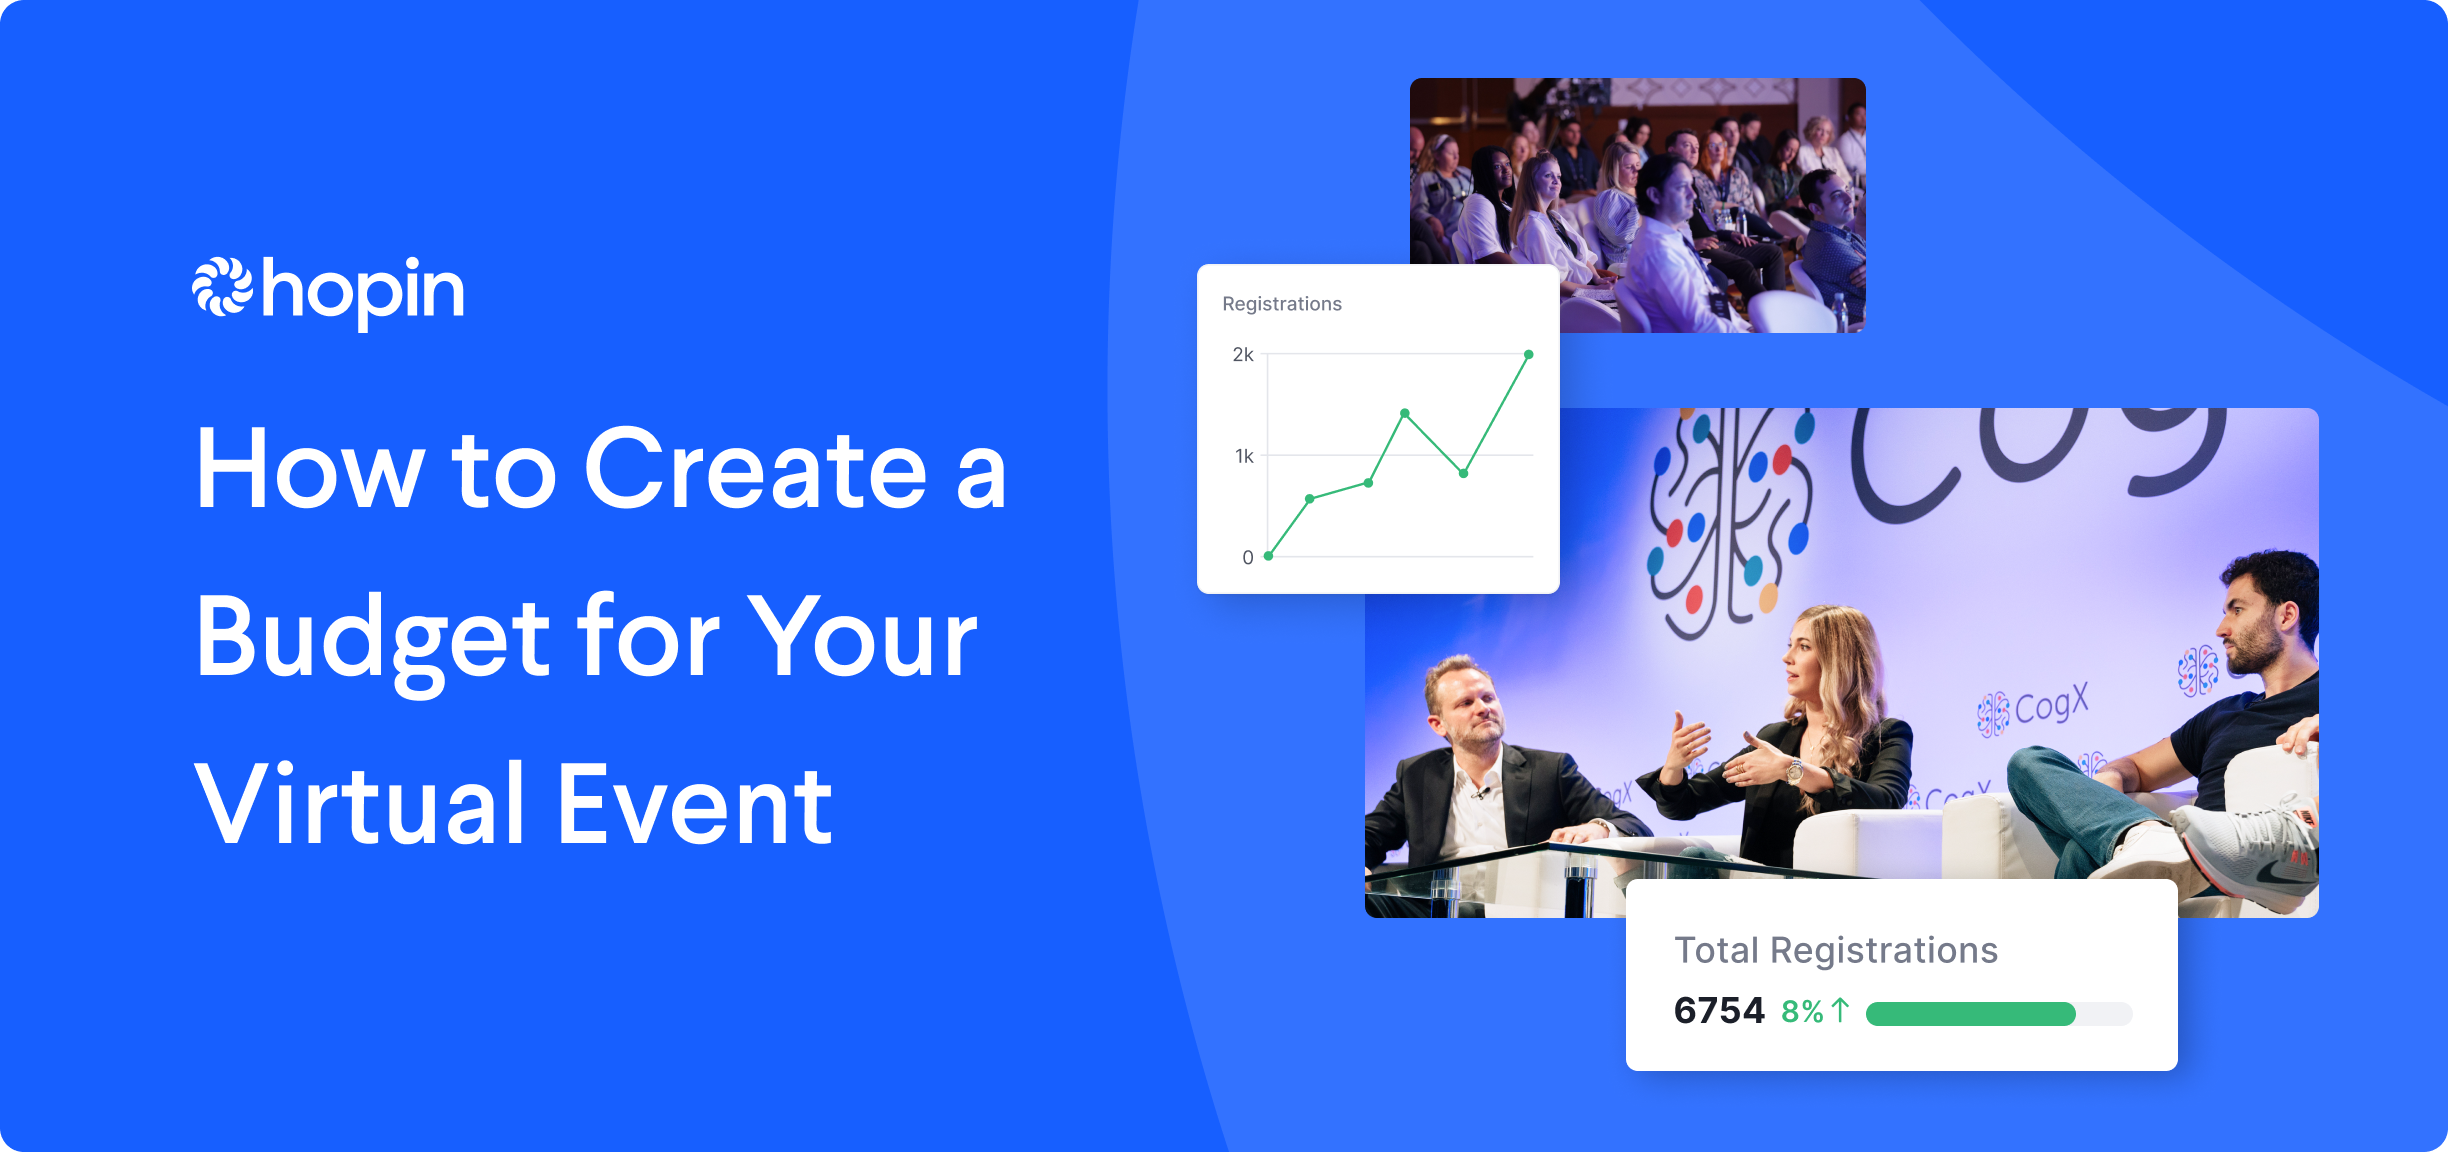 Establishing an event budget is mission-critical for making strategic decisions. Here are 7 things to consider when building a budget for a virtual or hybrid event.